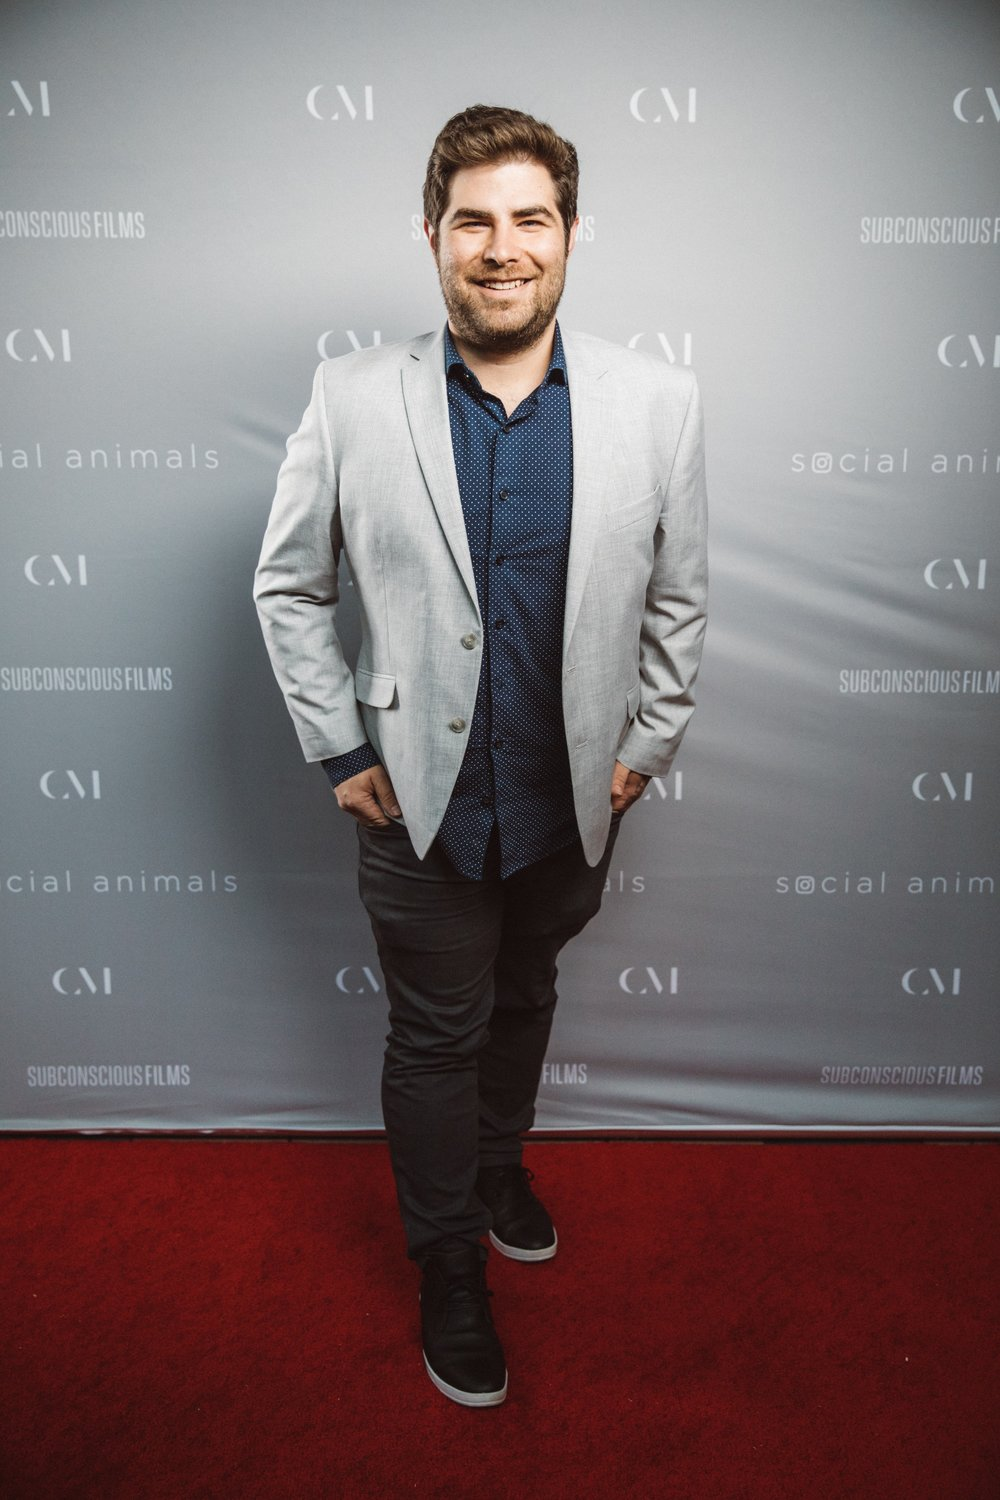 Social Animals Red Carpet-51.jpg